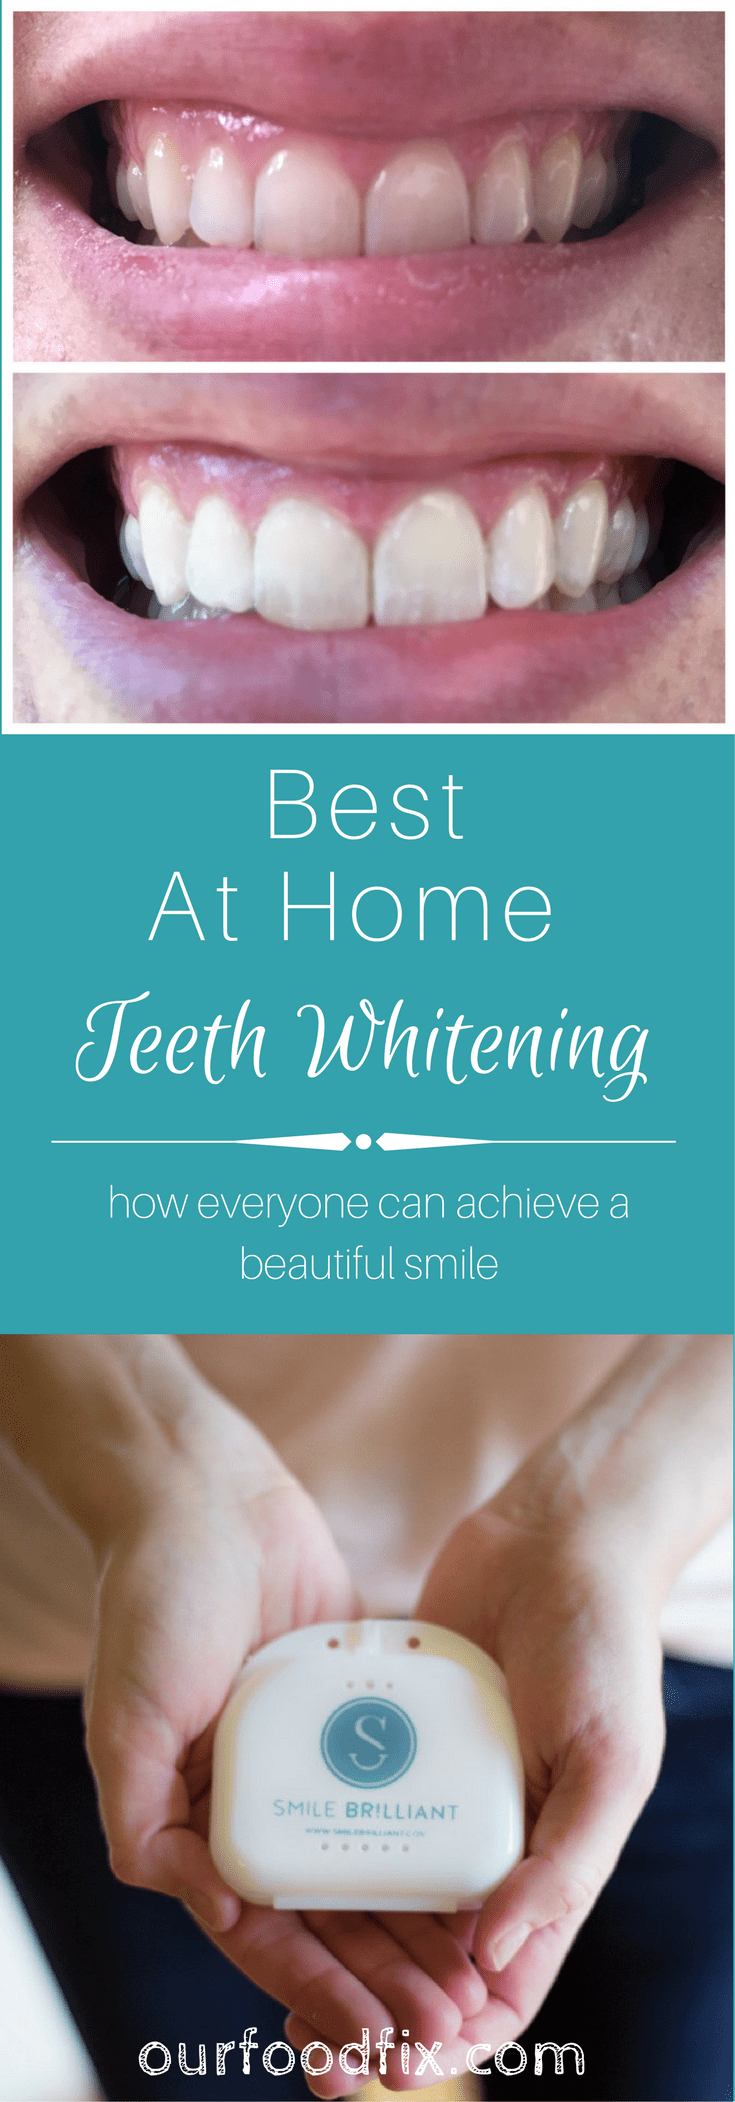 How to achieve your best smile with the most effective and simple to use at-home teeth whitening kit. Even an option for those with sensitive teeth. Ad| Teeth whitening | Teeth whitener | Beauty | How to | Tutorials | DIY beauty | Personal care #teethwhitening #teethwhitener #smilebrilliant